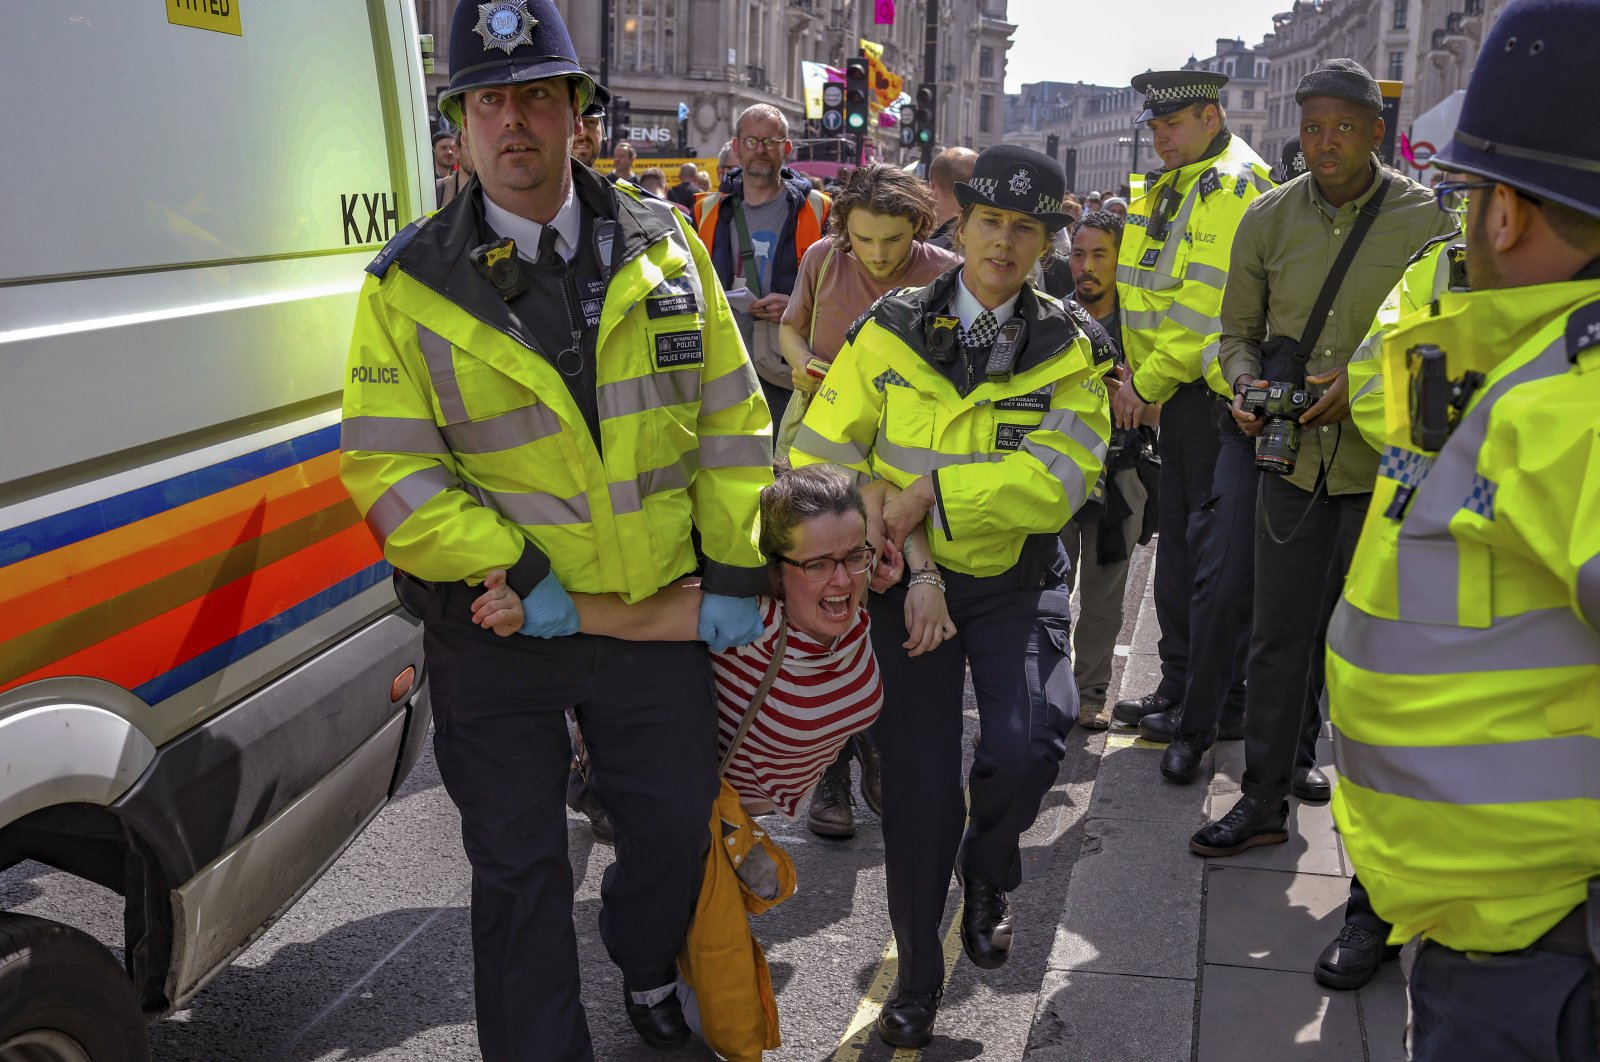 Police arrest protesters as they block traffic on Oxford Circus, London, U.K, Thursday, April 18, 2019. (AP Photo)